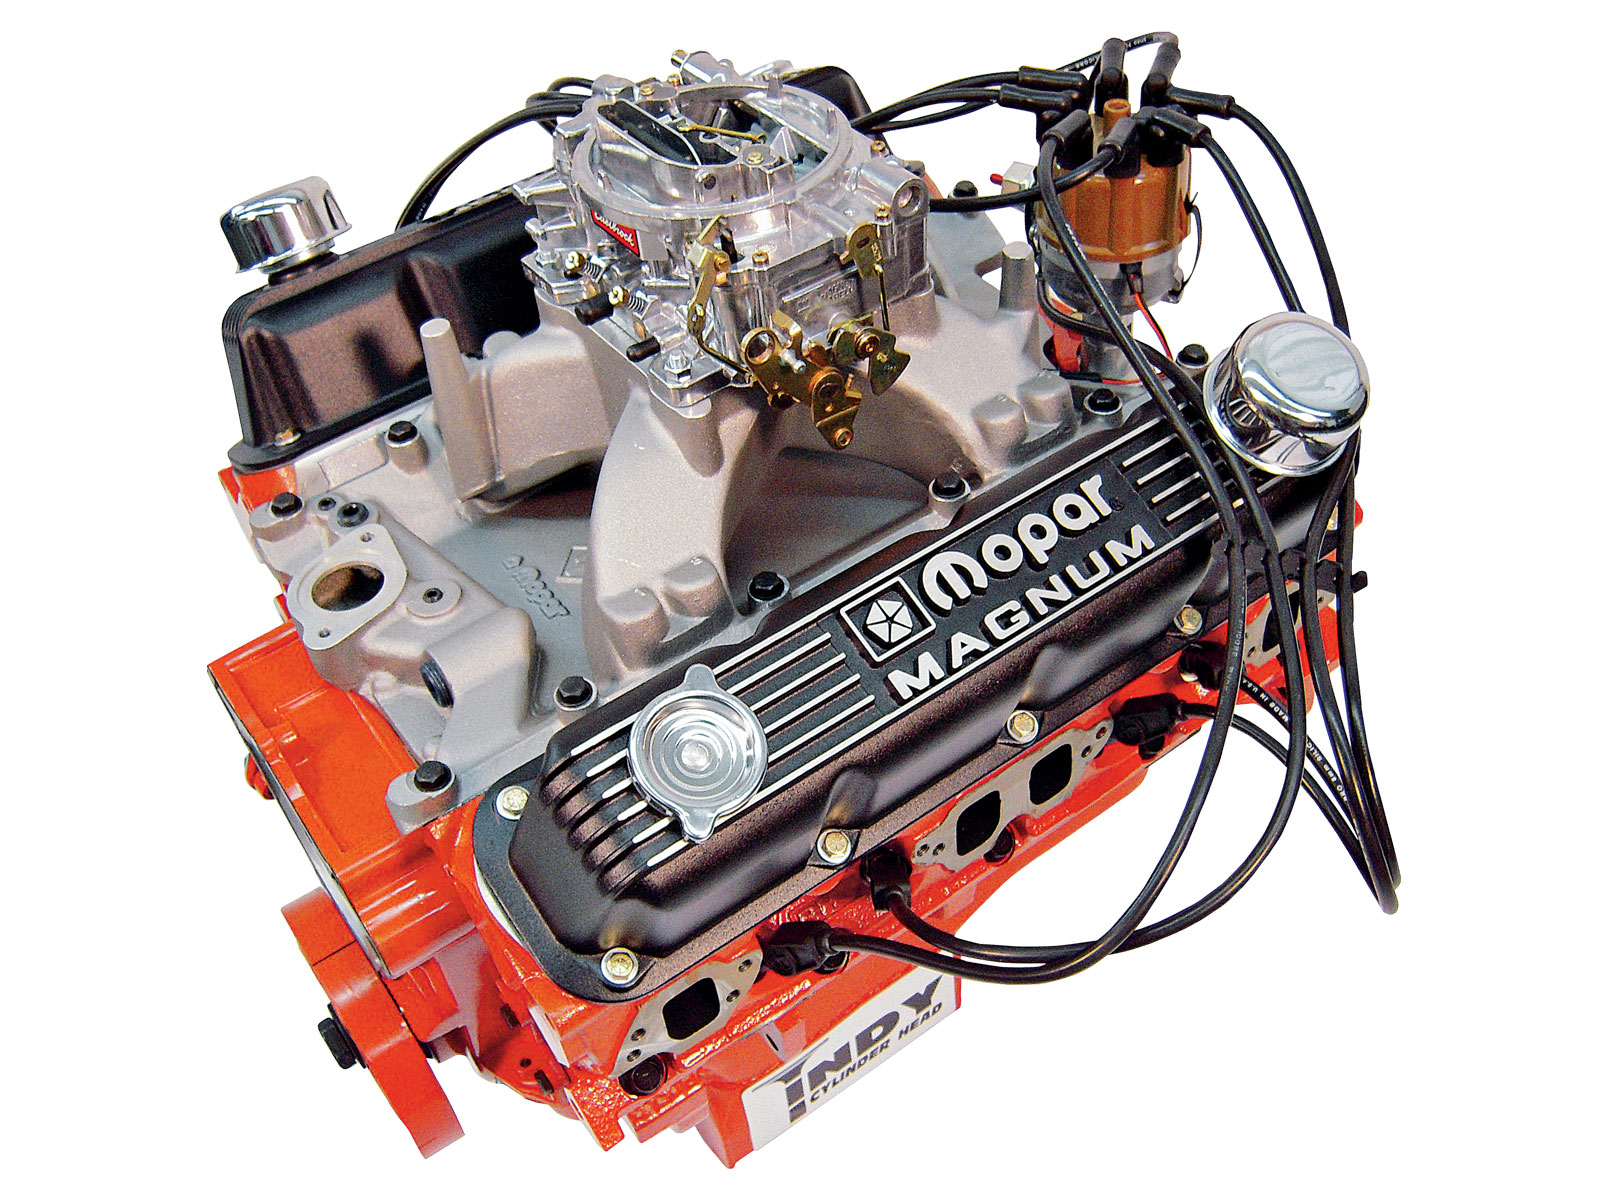 hight resolution of mopar complete crate engines guide small block hot rod mopar electronic ignition conversion mopar performance electronic ignition